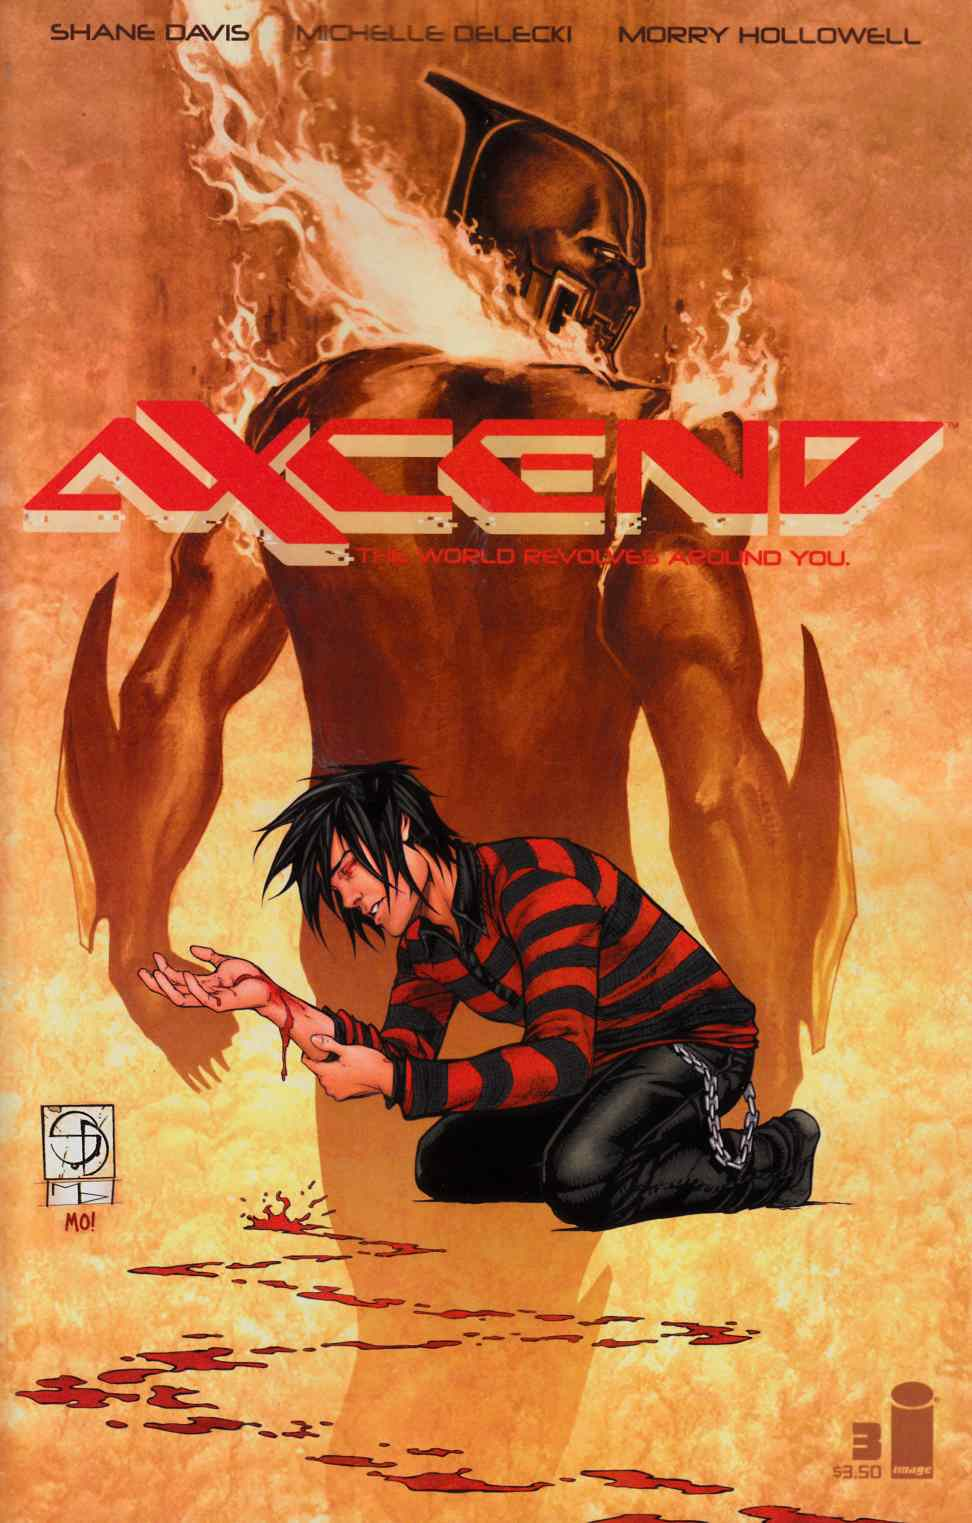 Axcend #3 Cover A- Davis Delecki & Hollowell [Image Comic] THUMBNAIL